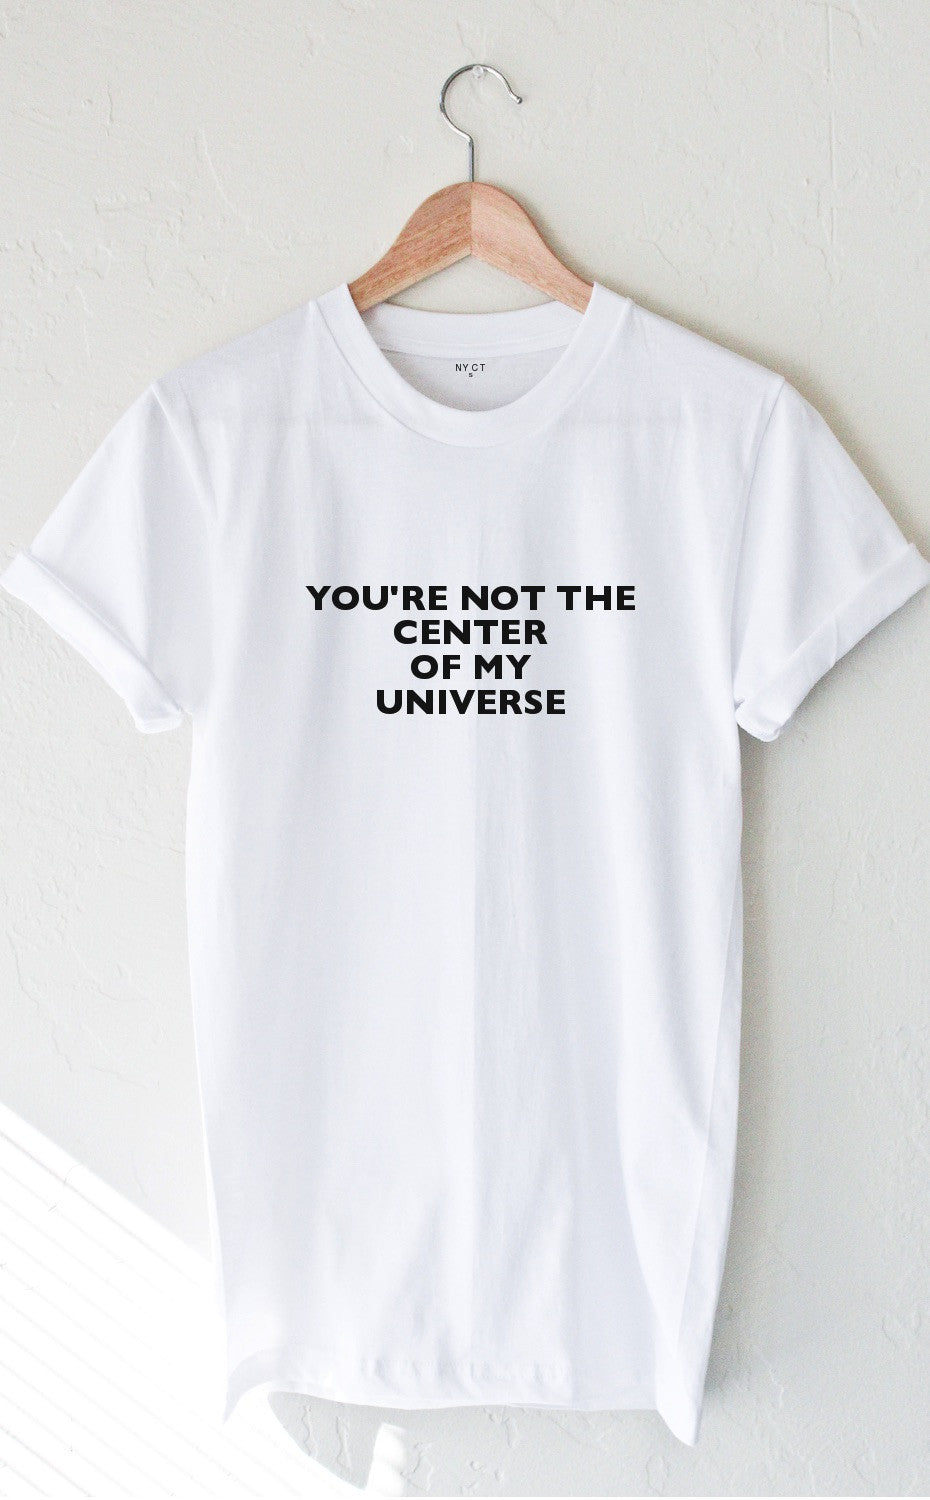 Not Clothing But Makeup Is Just As Important To Finish A: You're Not The Center Of My Universe Tee